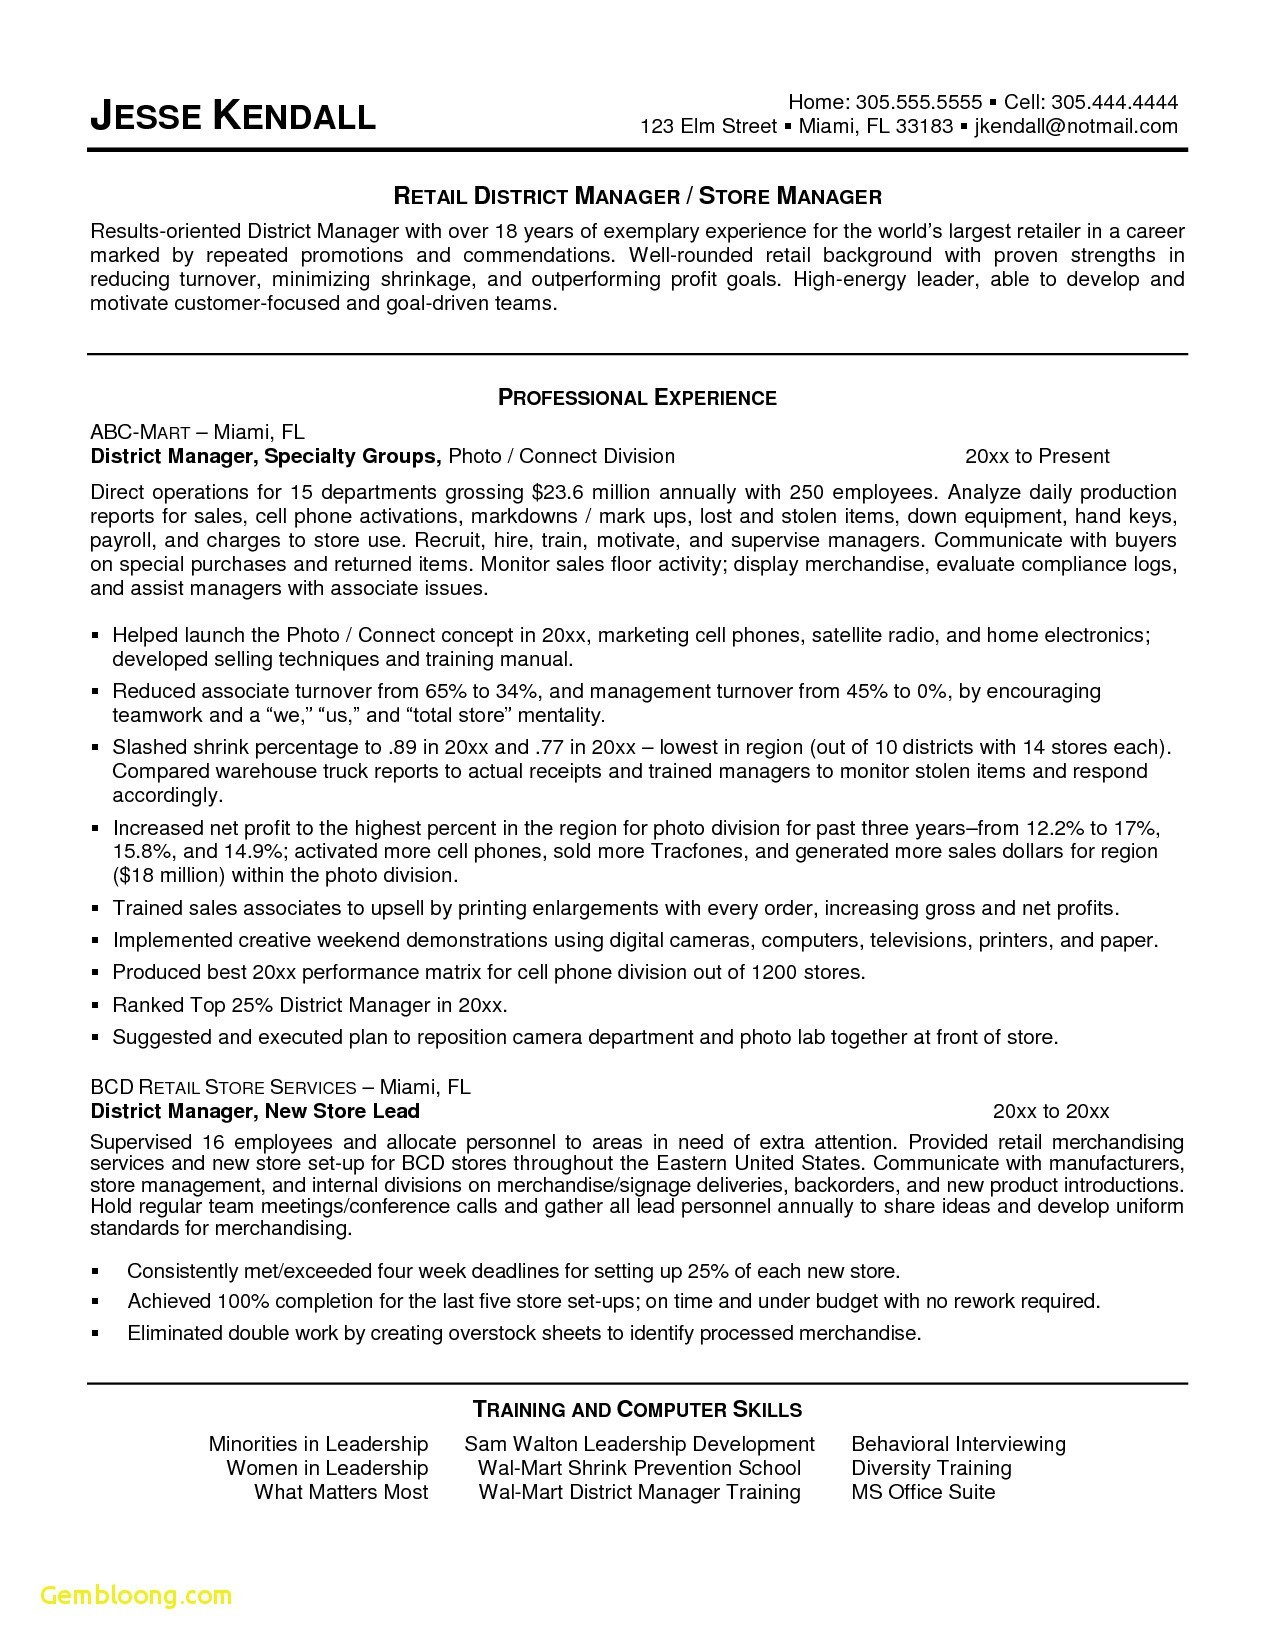 purchasing manager resume template example-Purchasing Manager Resume Beautiful Fresh Grapher Resume Sample Beautiful Resume Quotes 0d Bar Manager Purchasing 13-h